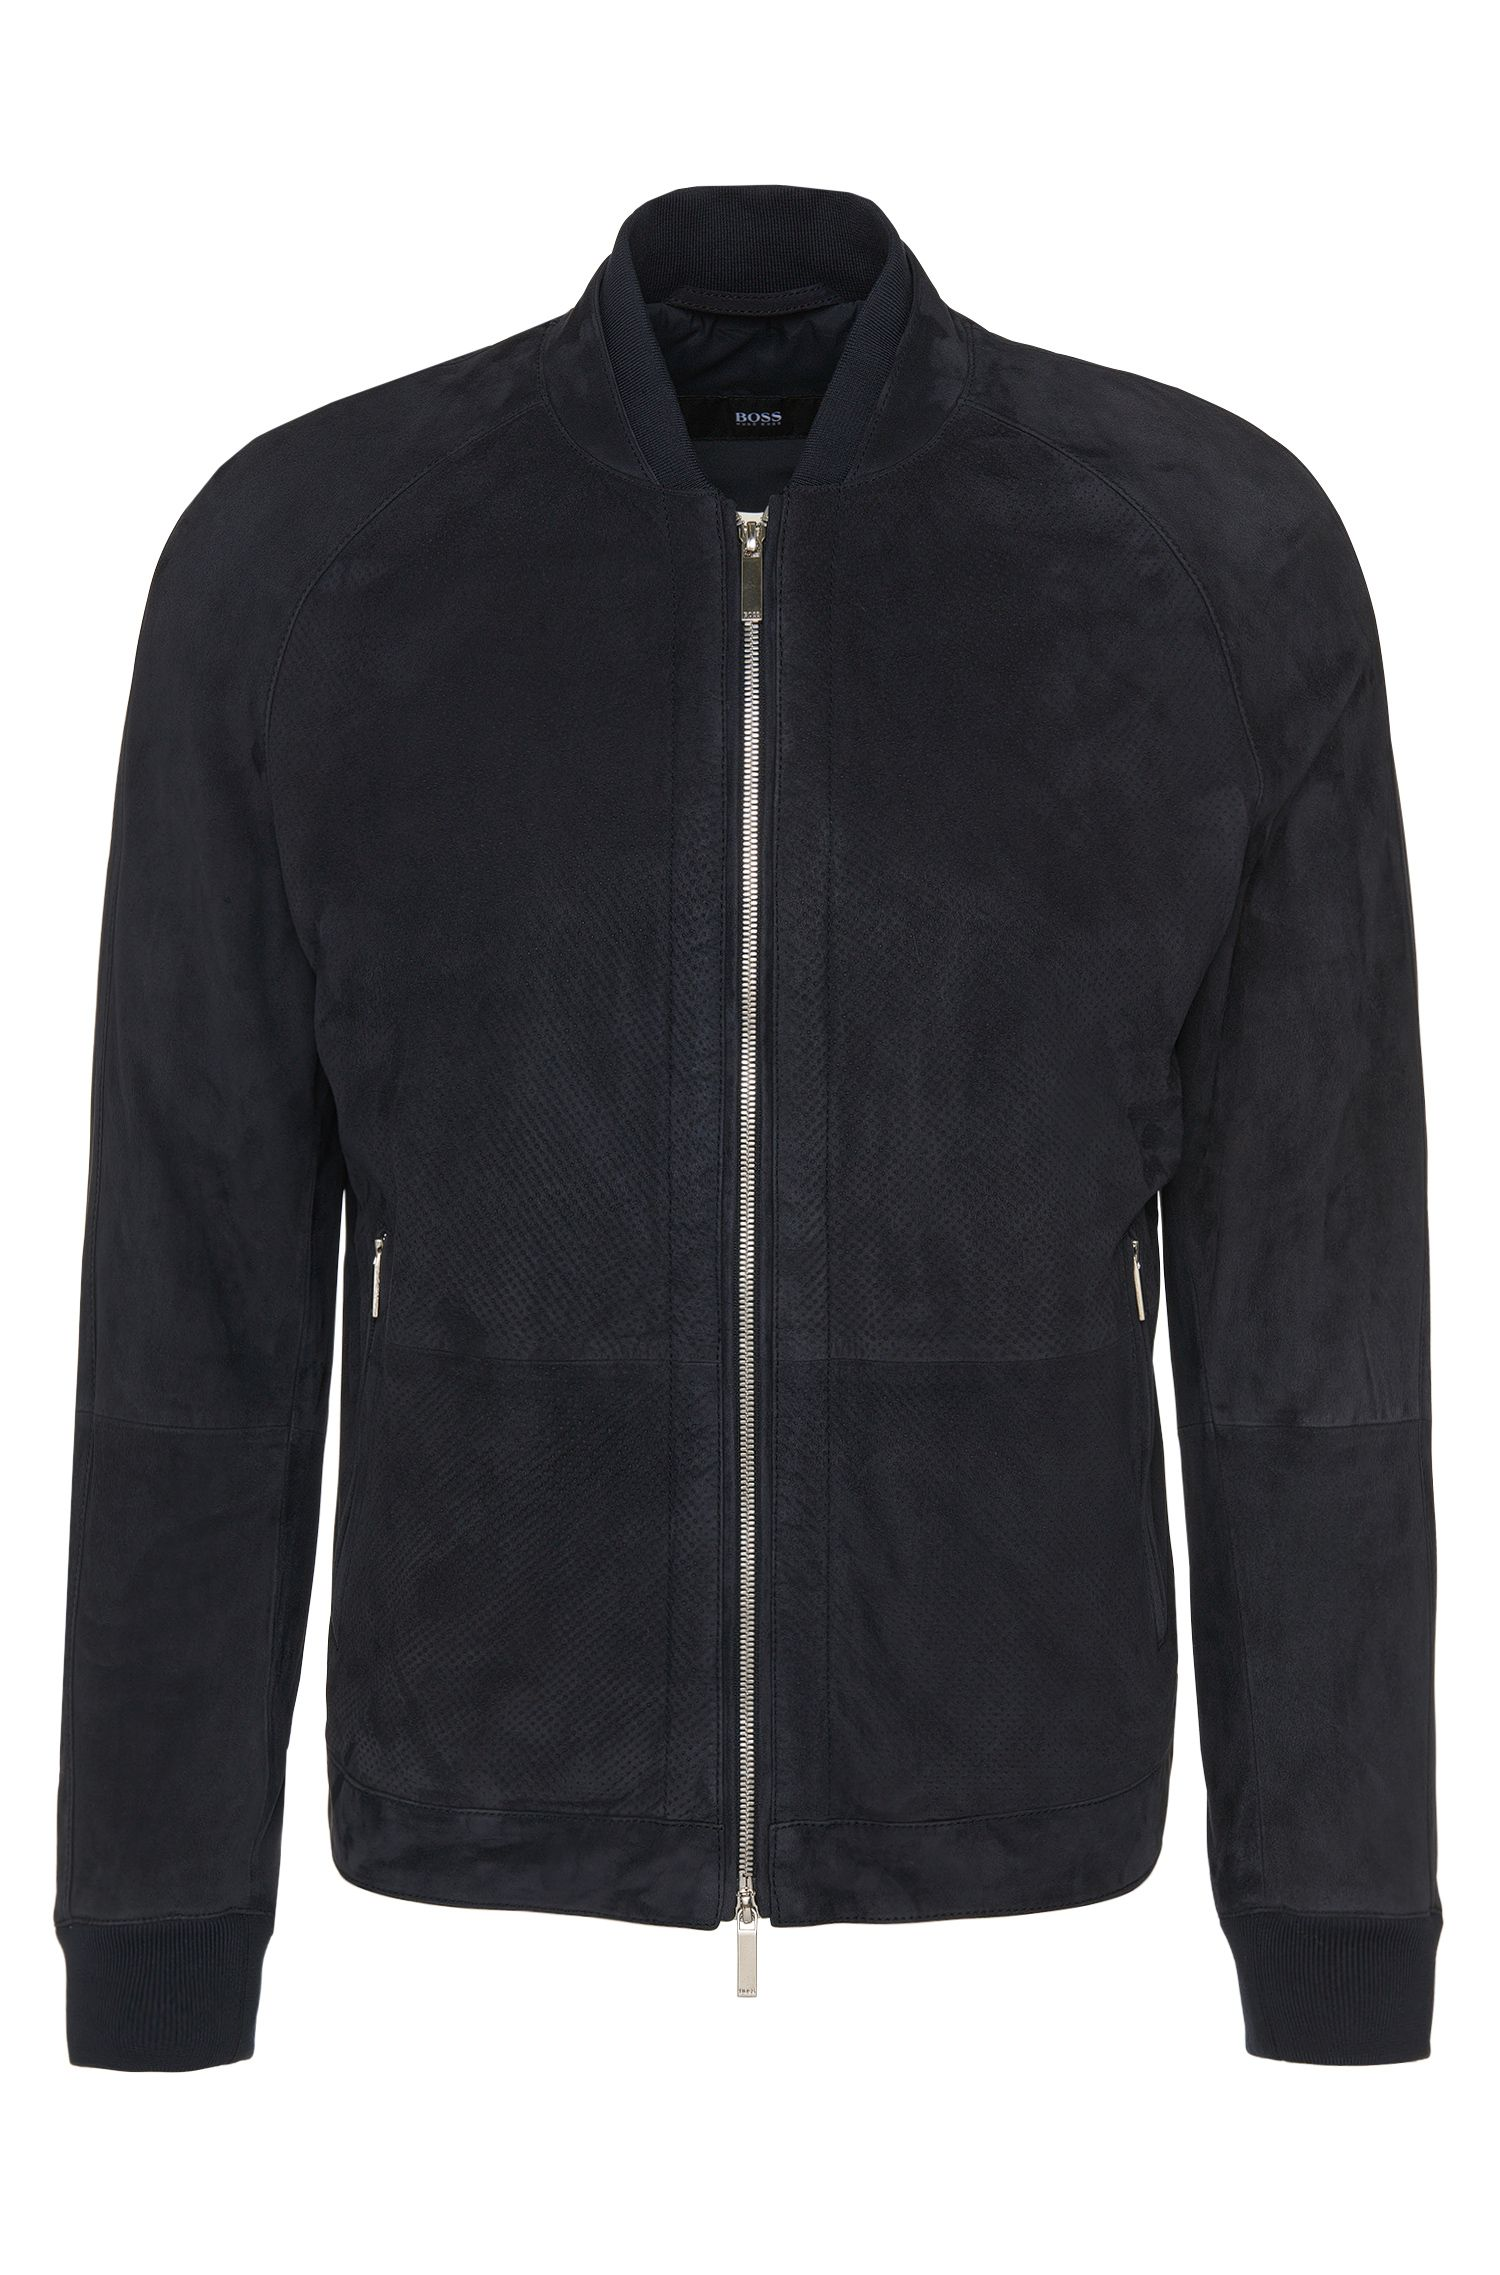 'Gorin'   Goat Suede Leather Perforated Jacket